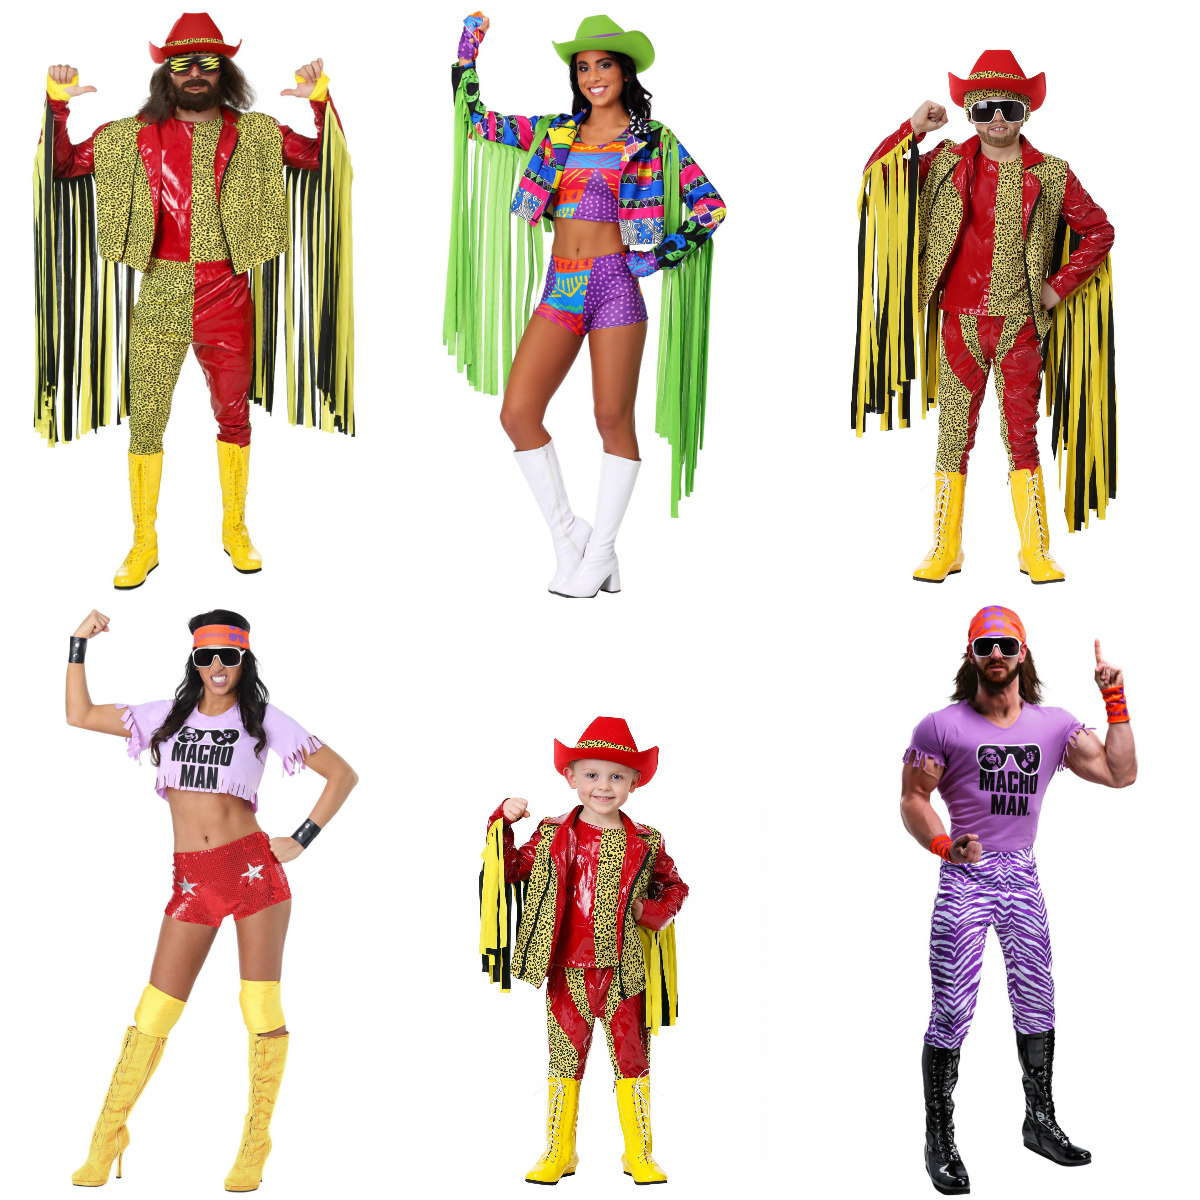 WWE Macho Man Randy Savage Costumes